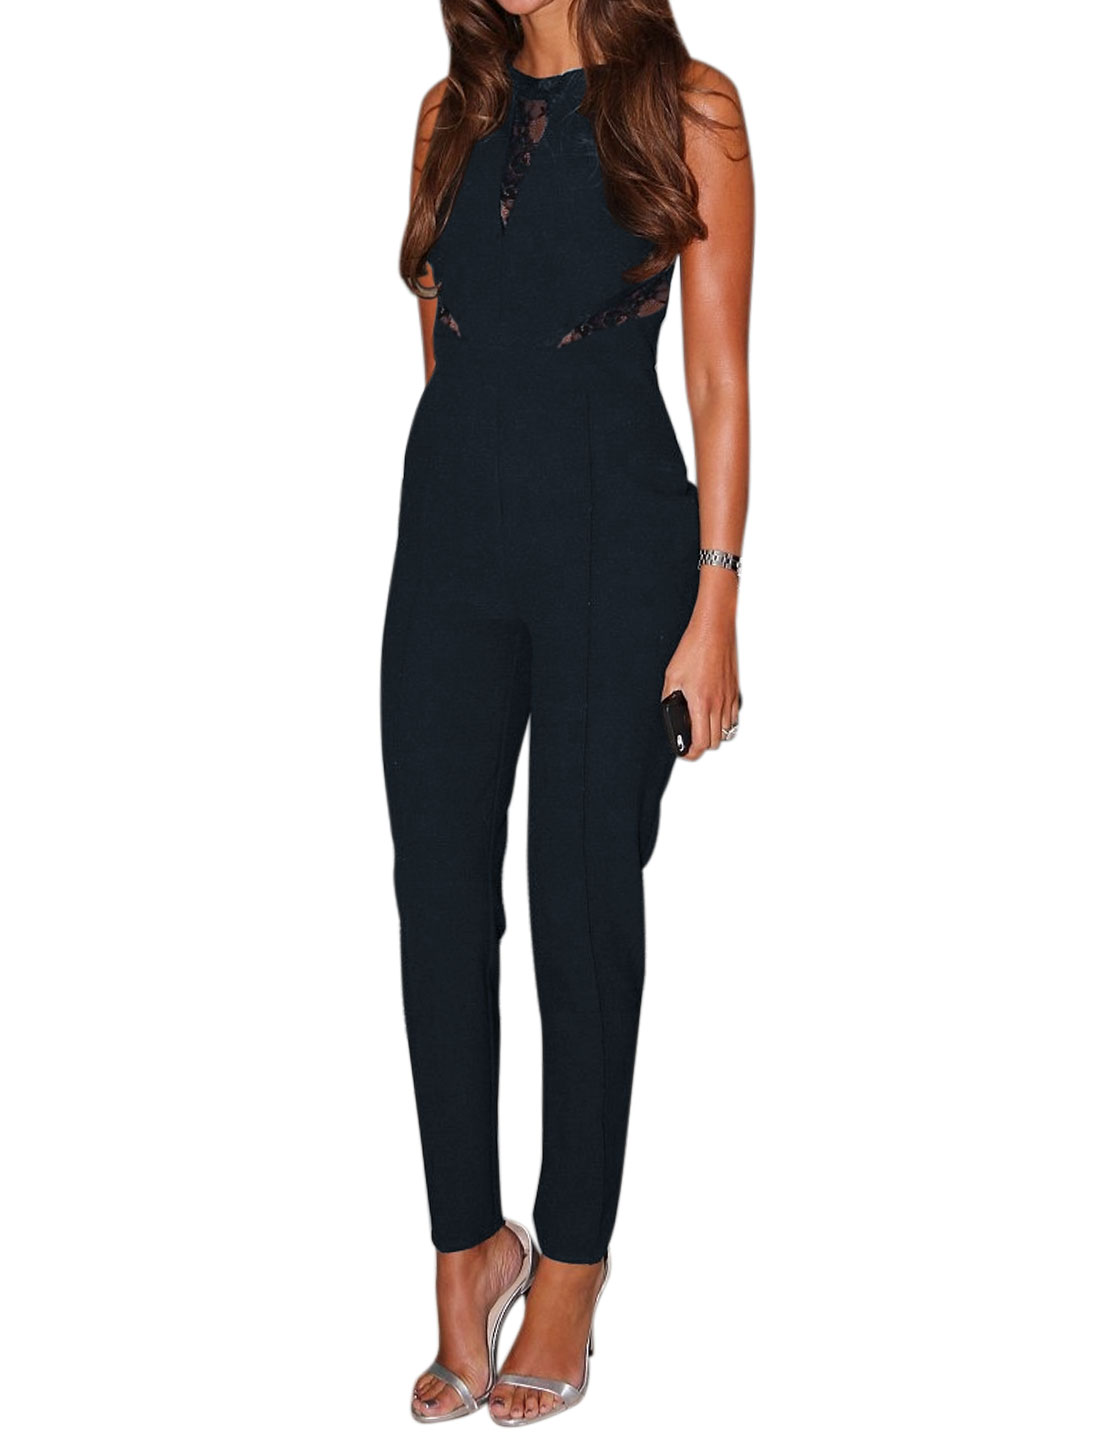 Women Crew Neck Sleeveless Semi Sheer Lace Panel Jumpsuit Blue S